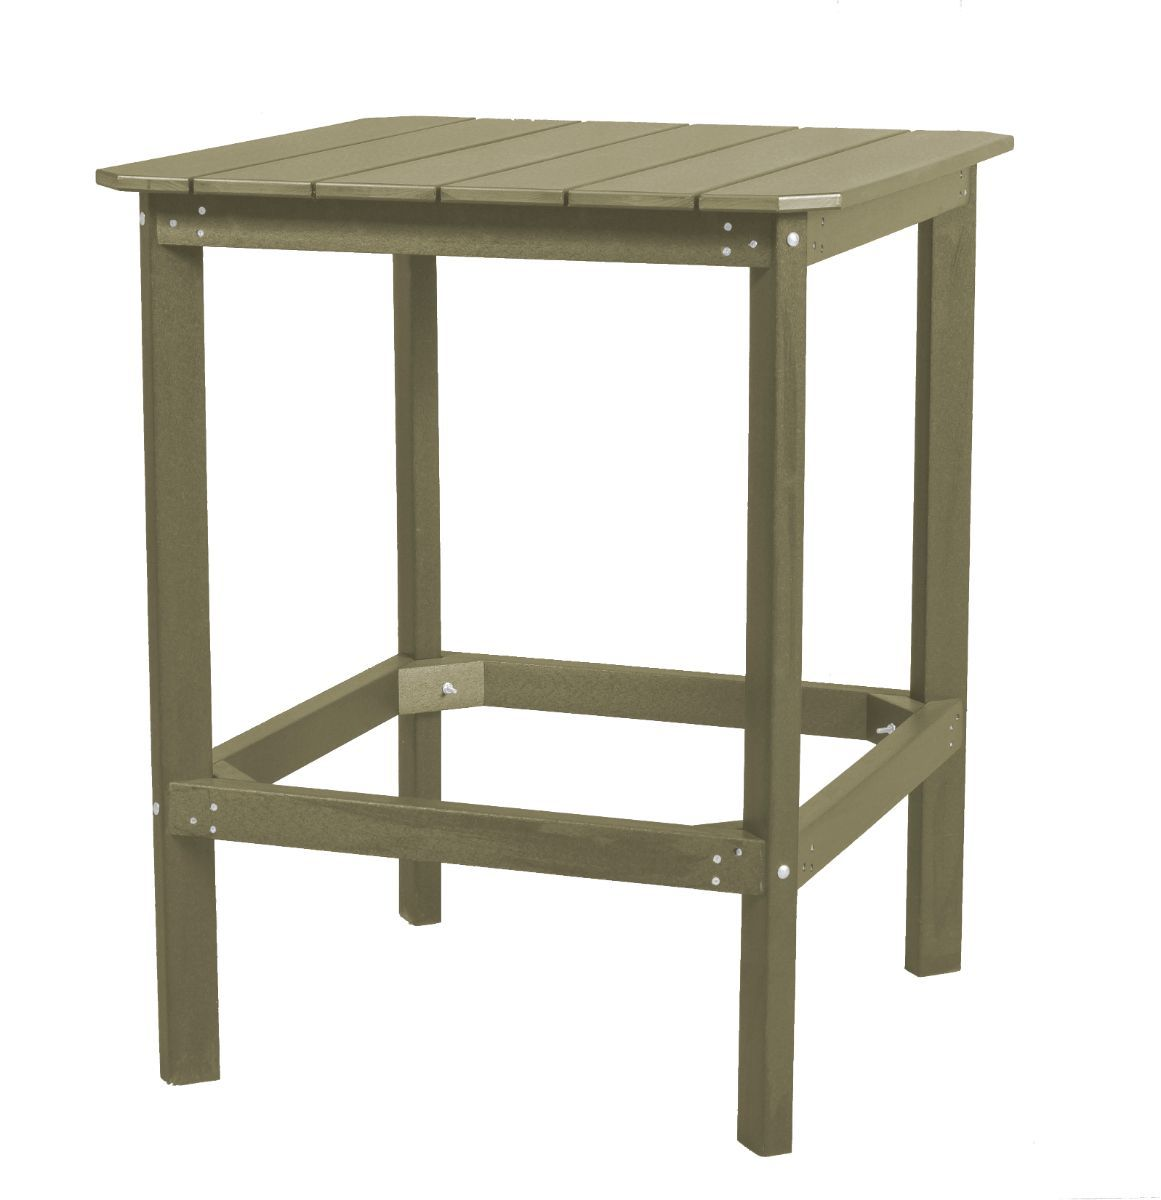 Olive Panama High Outdoor Dining Table